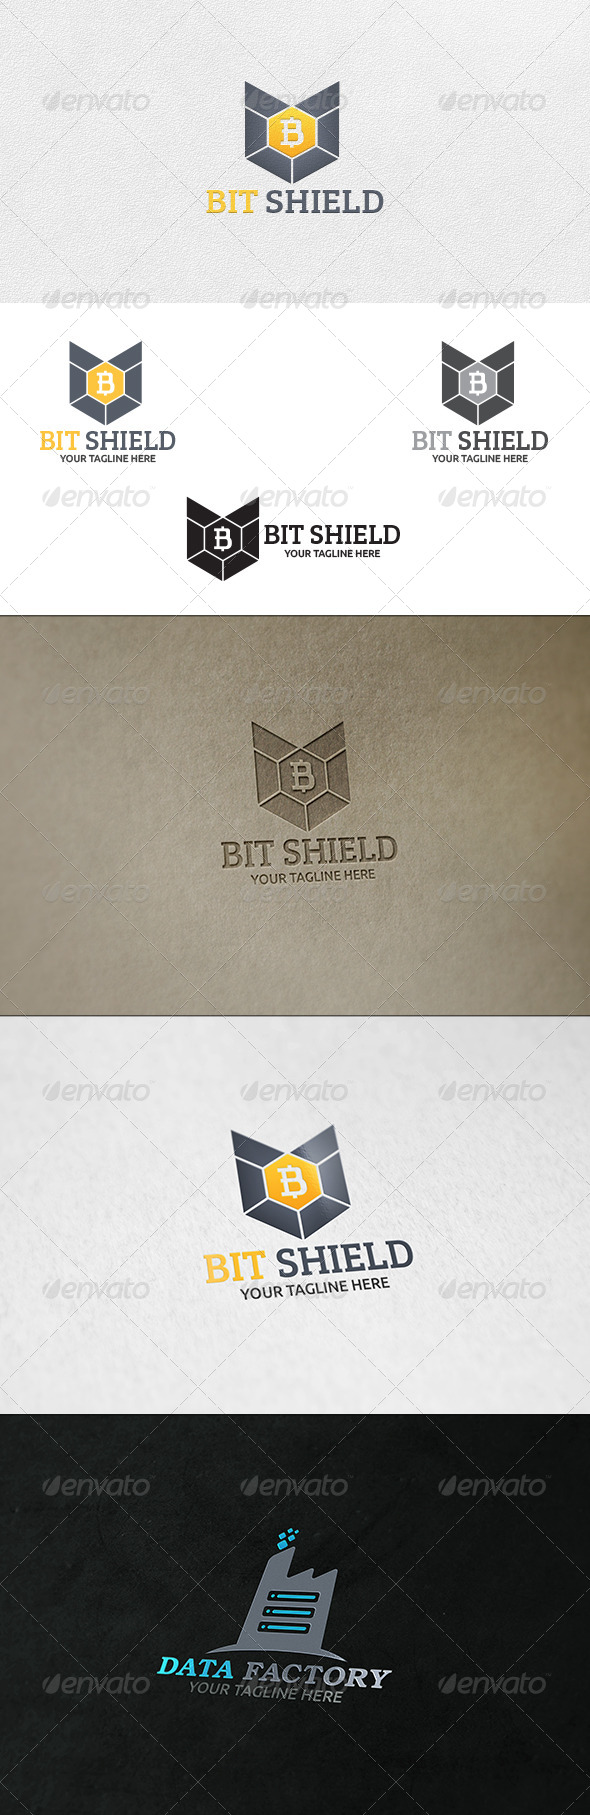 GraphicRiver Bit Shield Logo Template 6860383